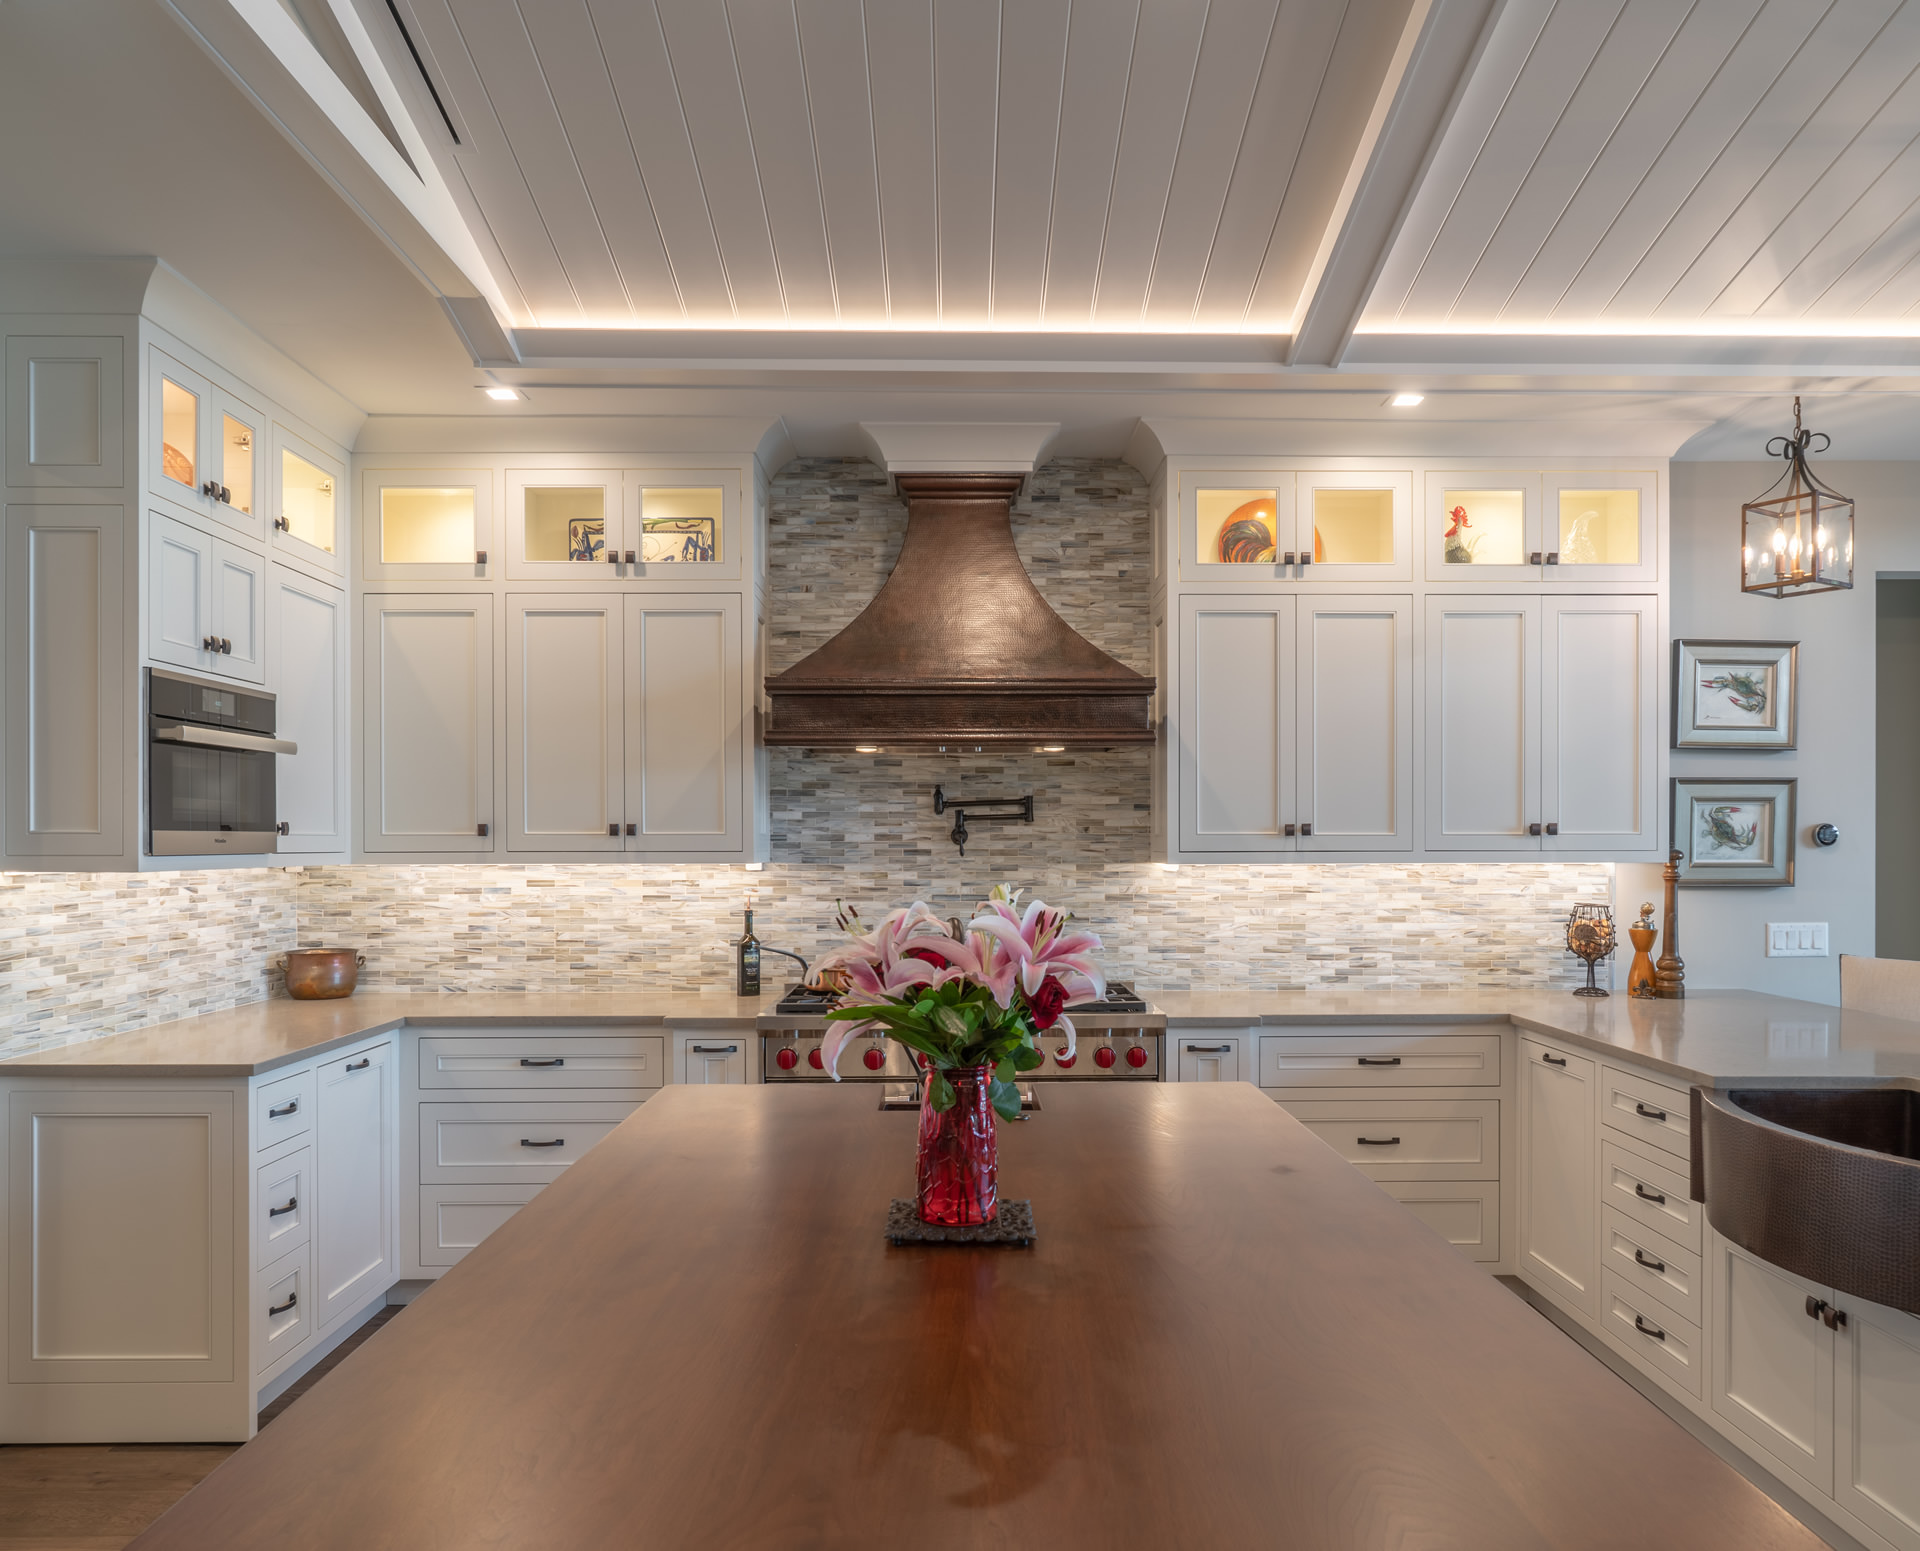 WHAT TO THINK THROUGH BEFORE YOUR NAPLES KITCHEN REMODEL